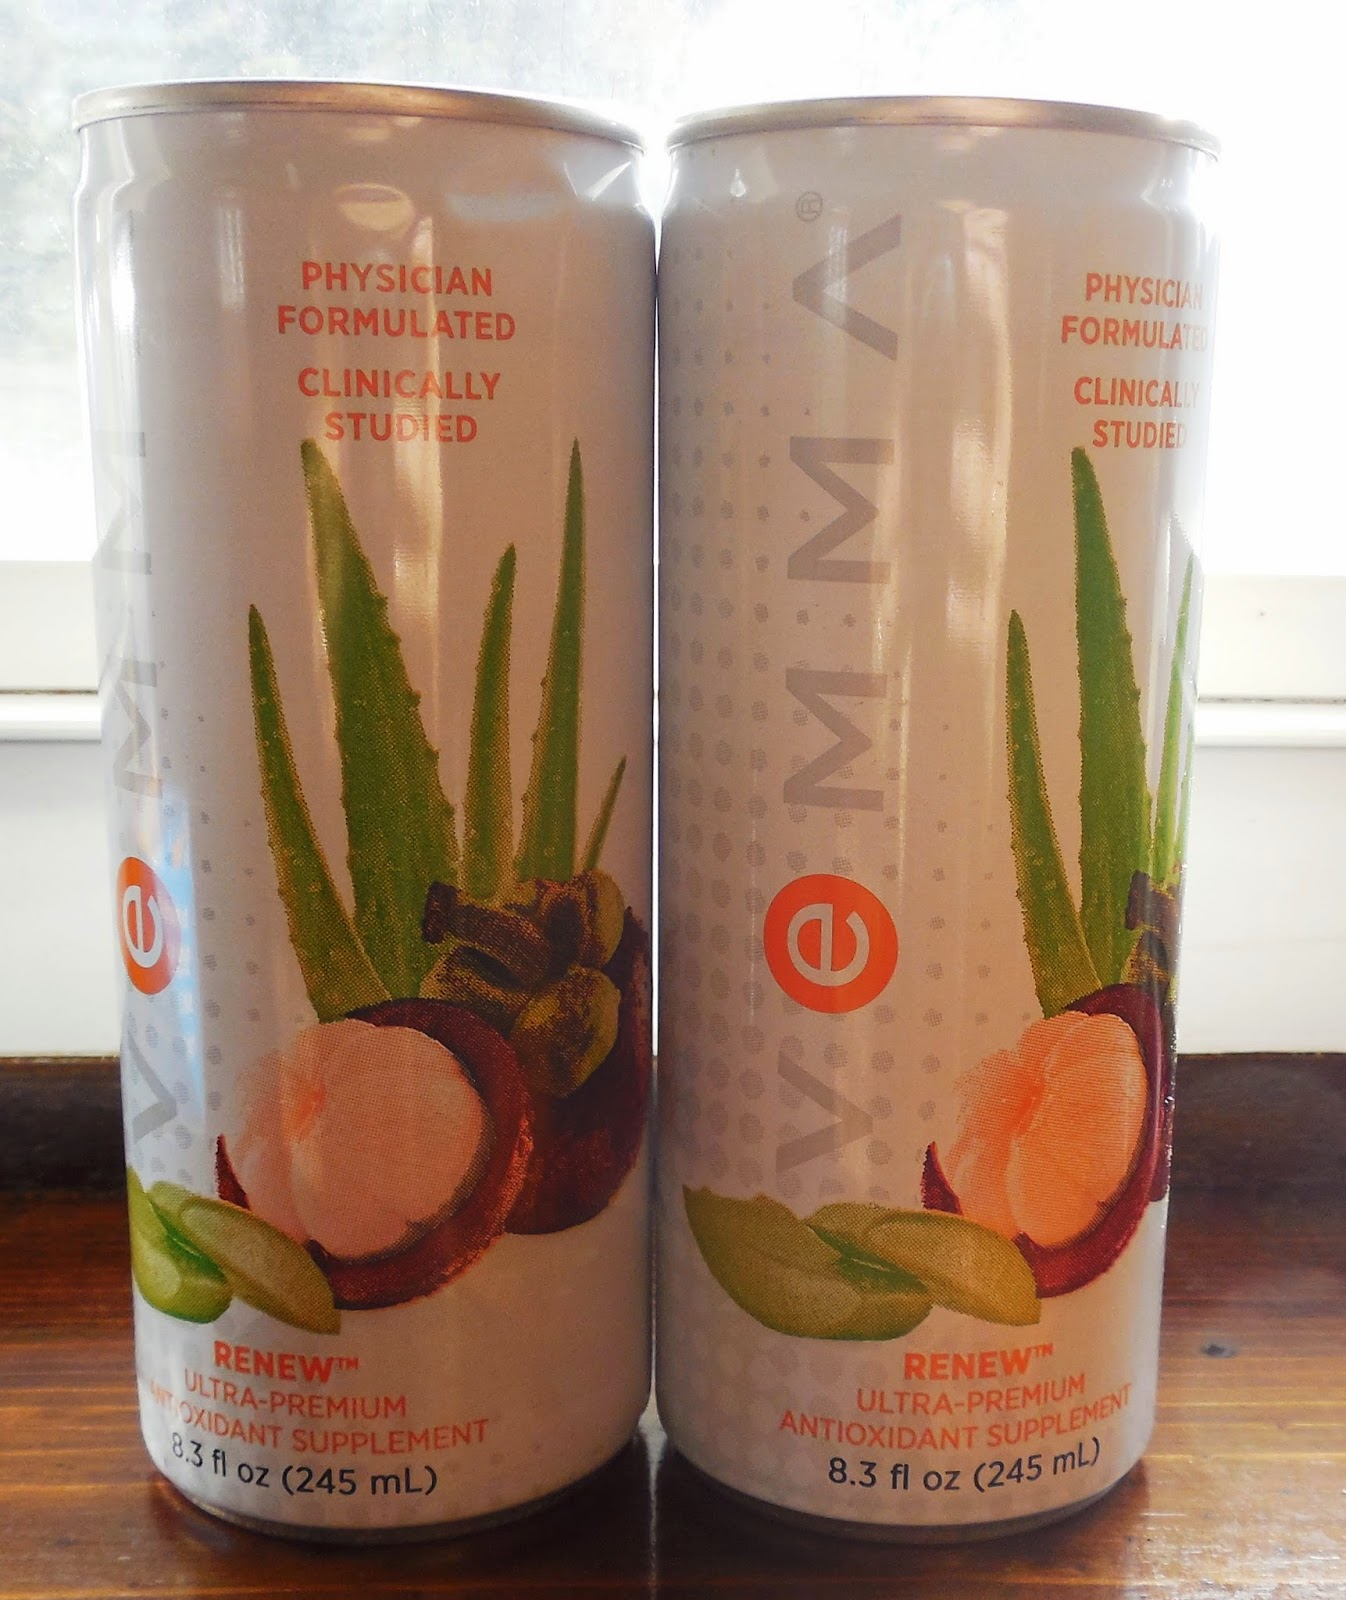 Vemma Antioxidant supplement